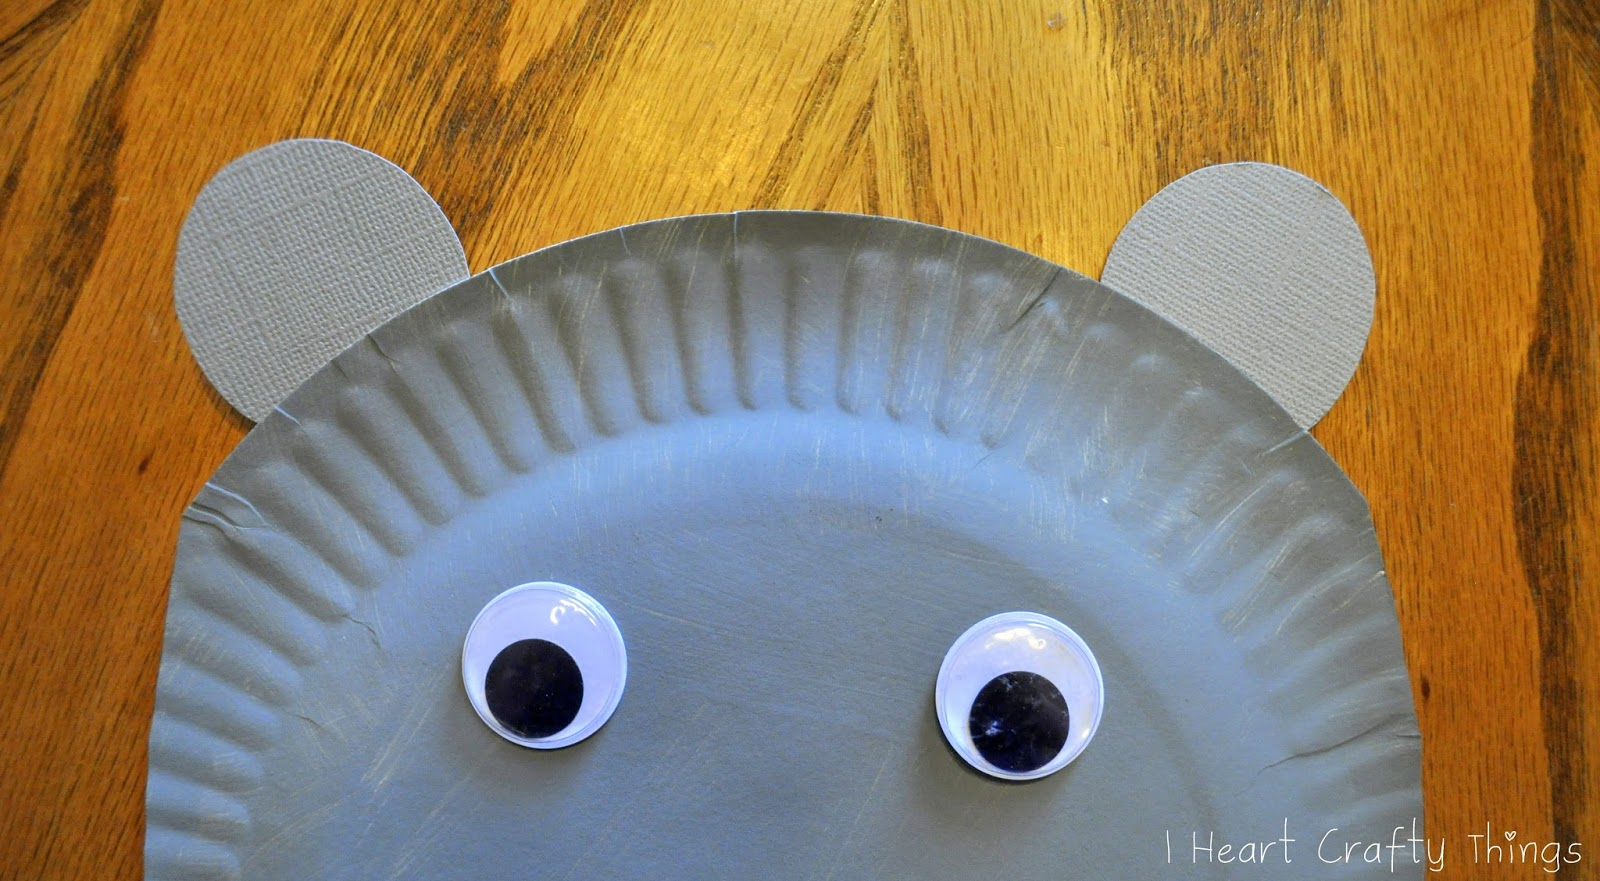 ... Halloween Crafts Paper Plates Paper Plate Hippopotamus I Heart Crafty Things ... & 100+ [ Halloween Crafts Paper Plates ] | Paper Plate Halloween ...